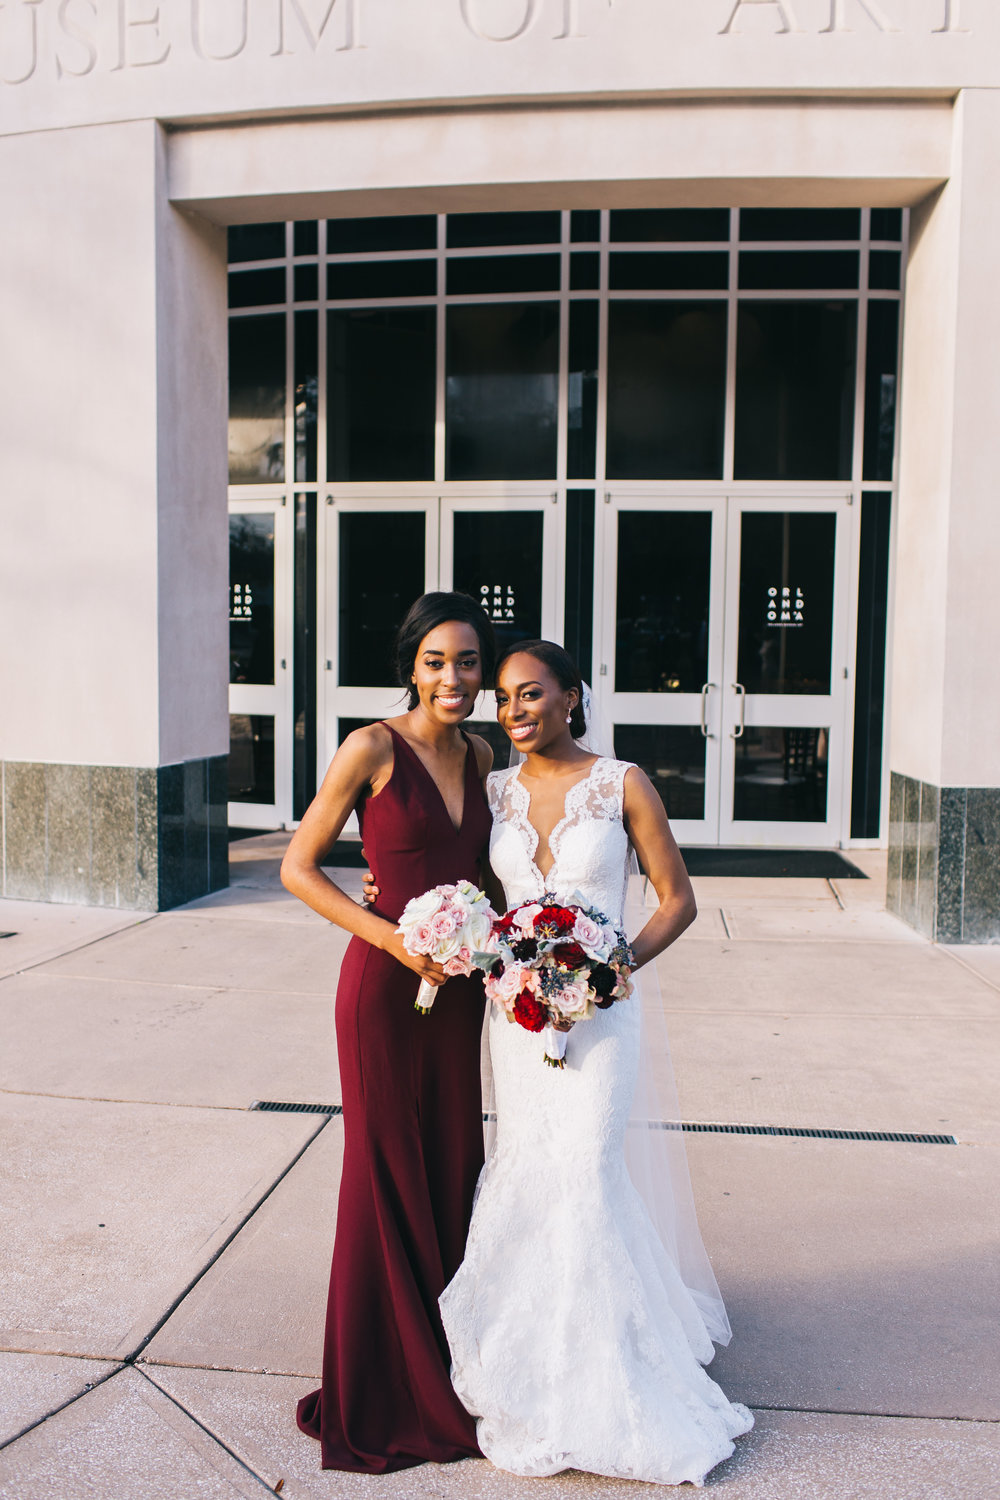 Bluegrass Chic - Bride and Maid of Honor in burgundy